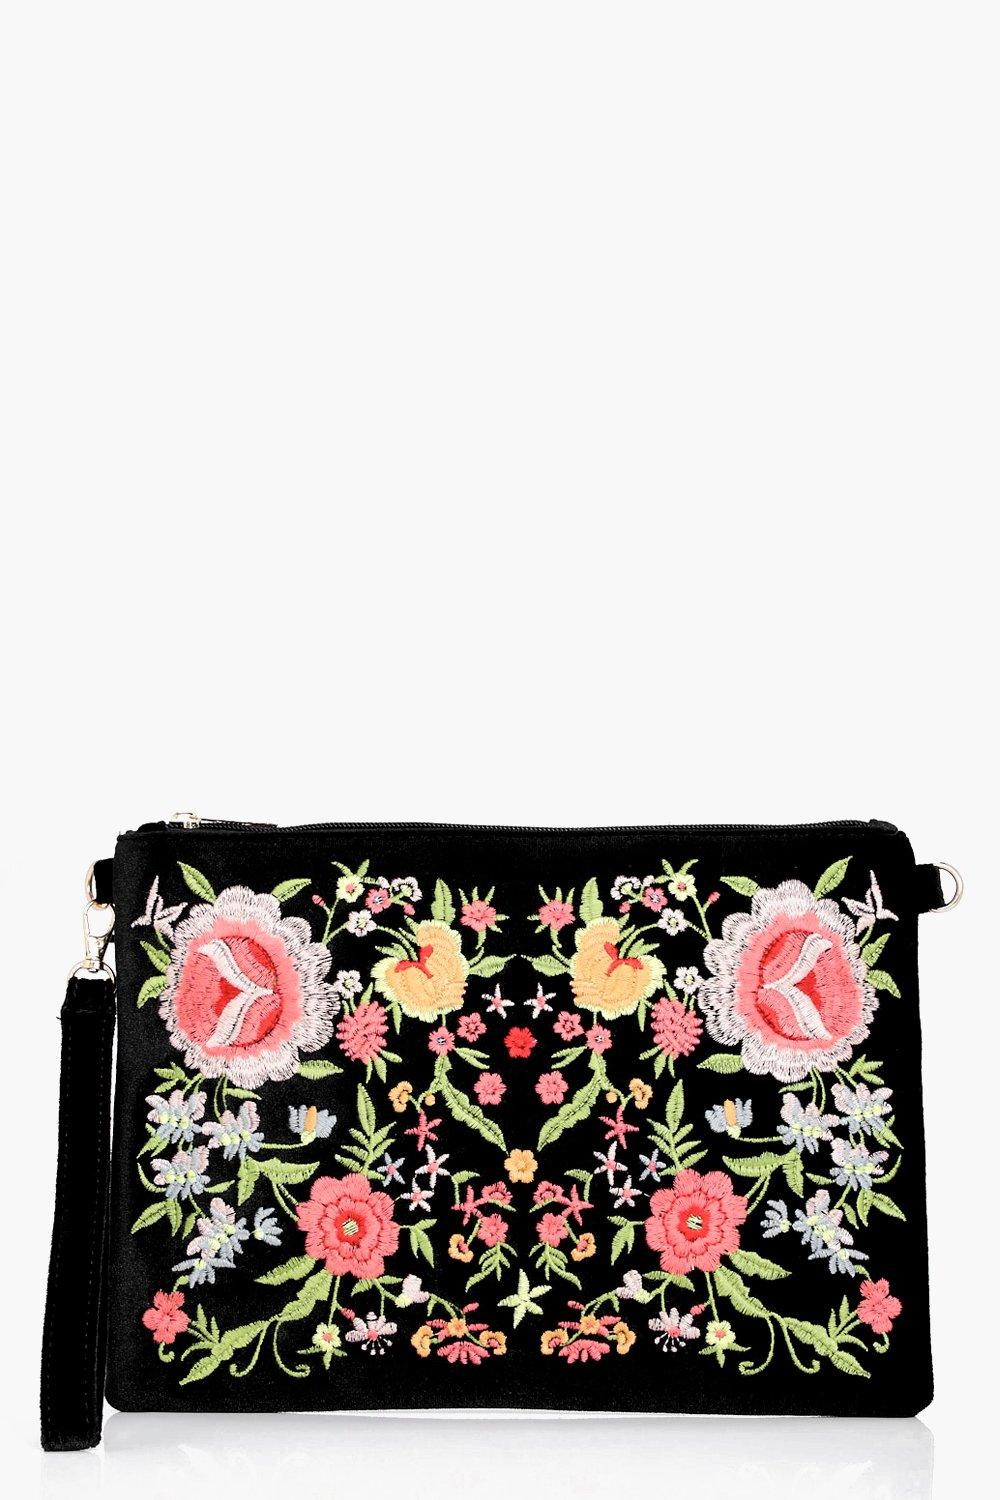 All Over Embroidered Clutch - black - Hannah All O